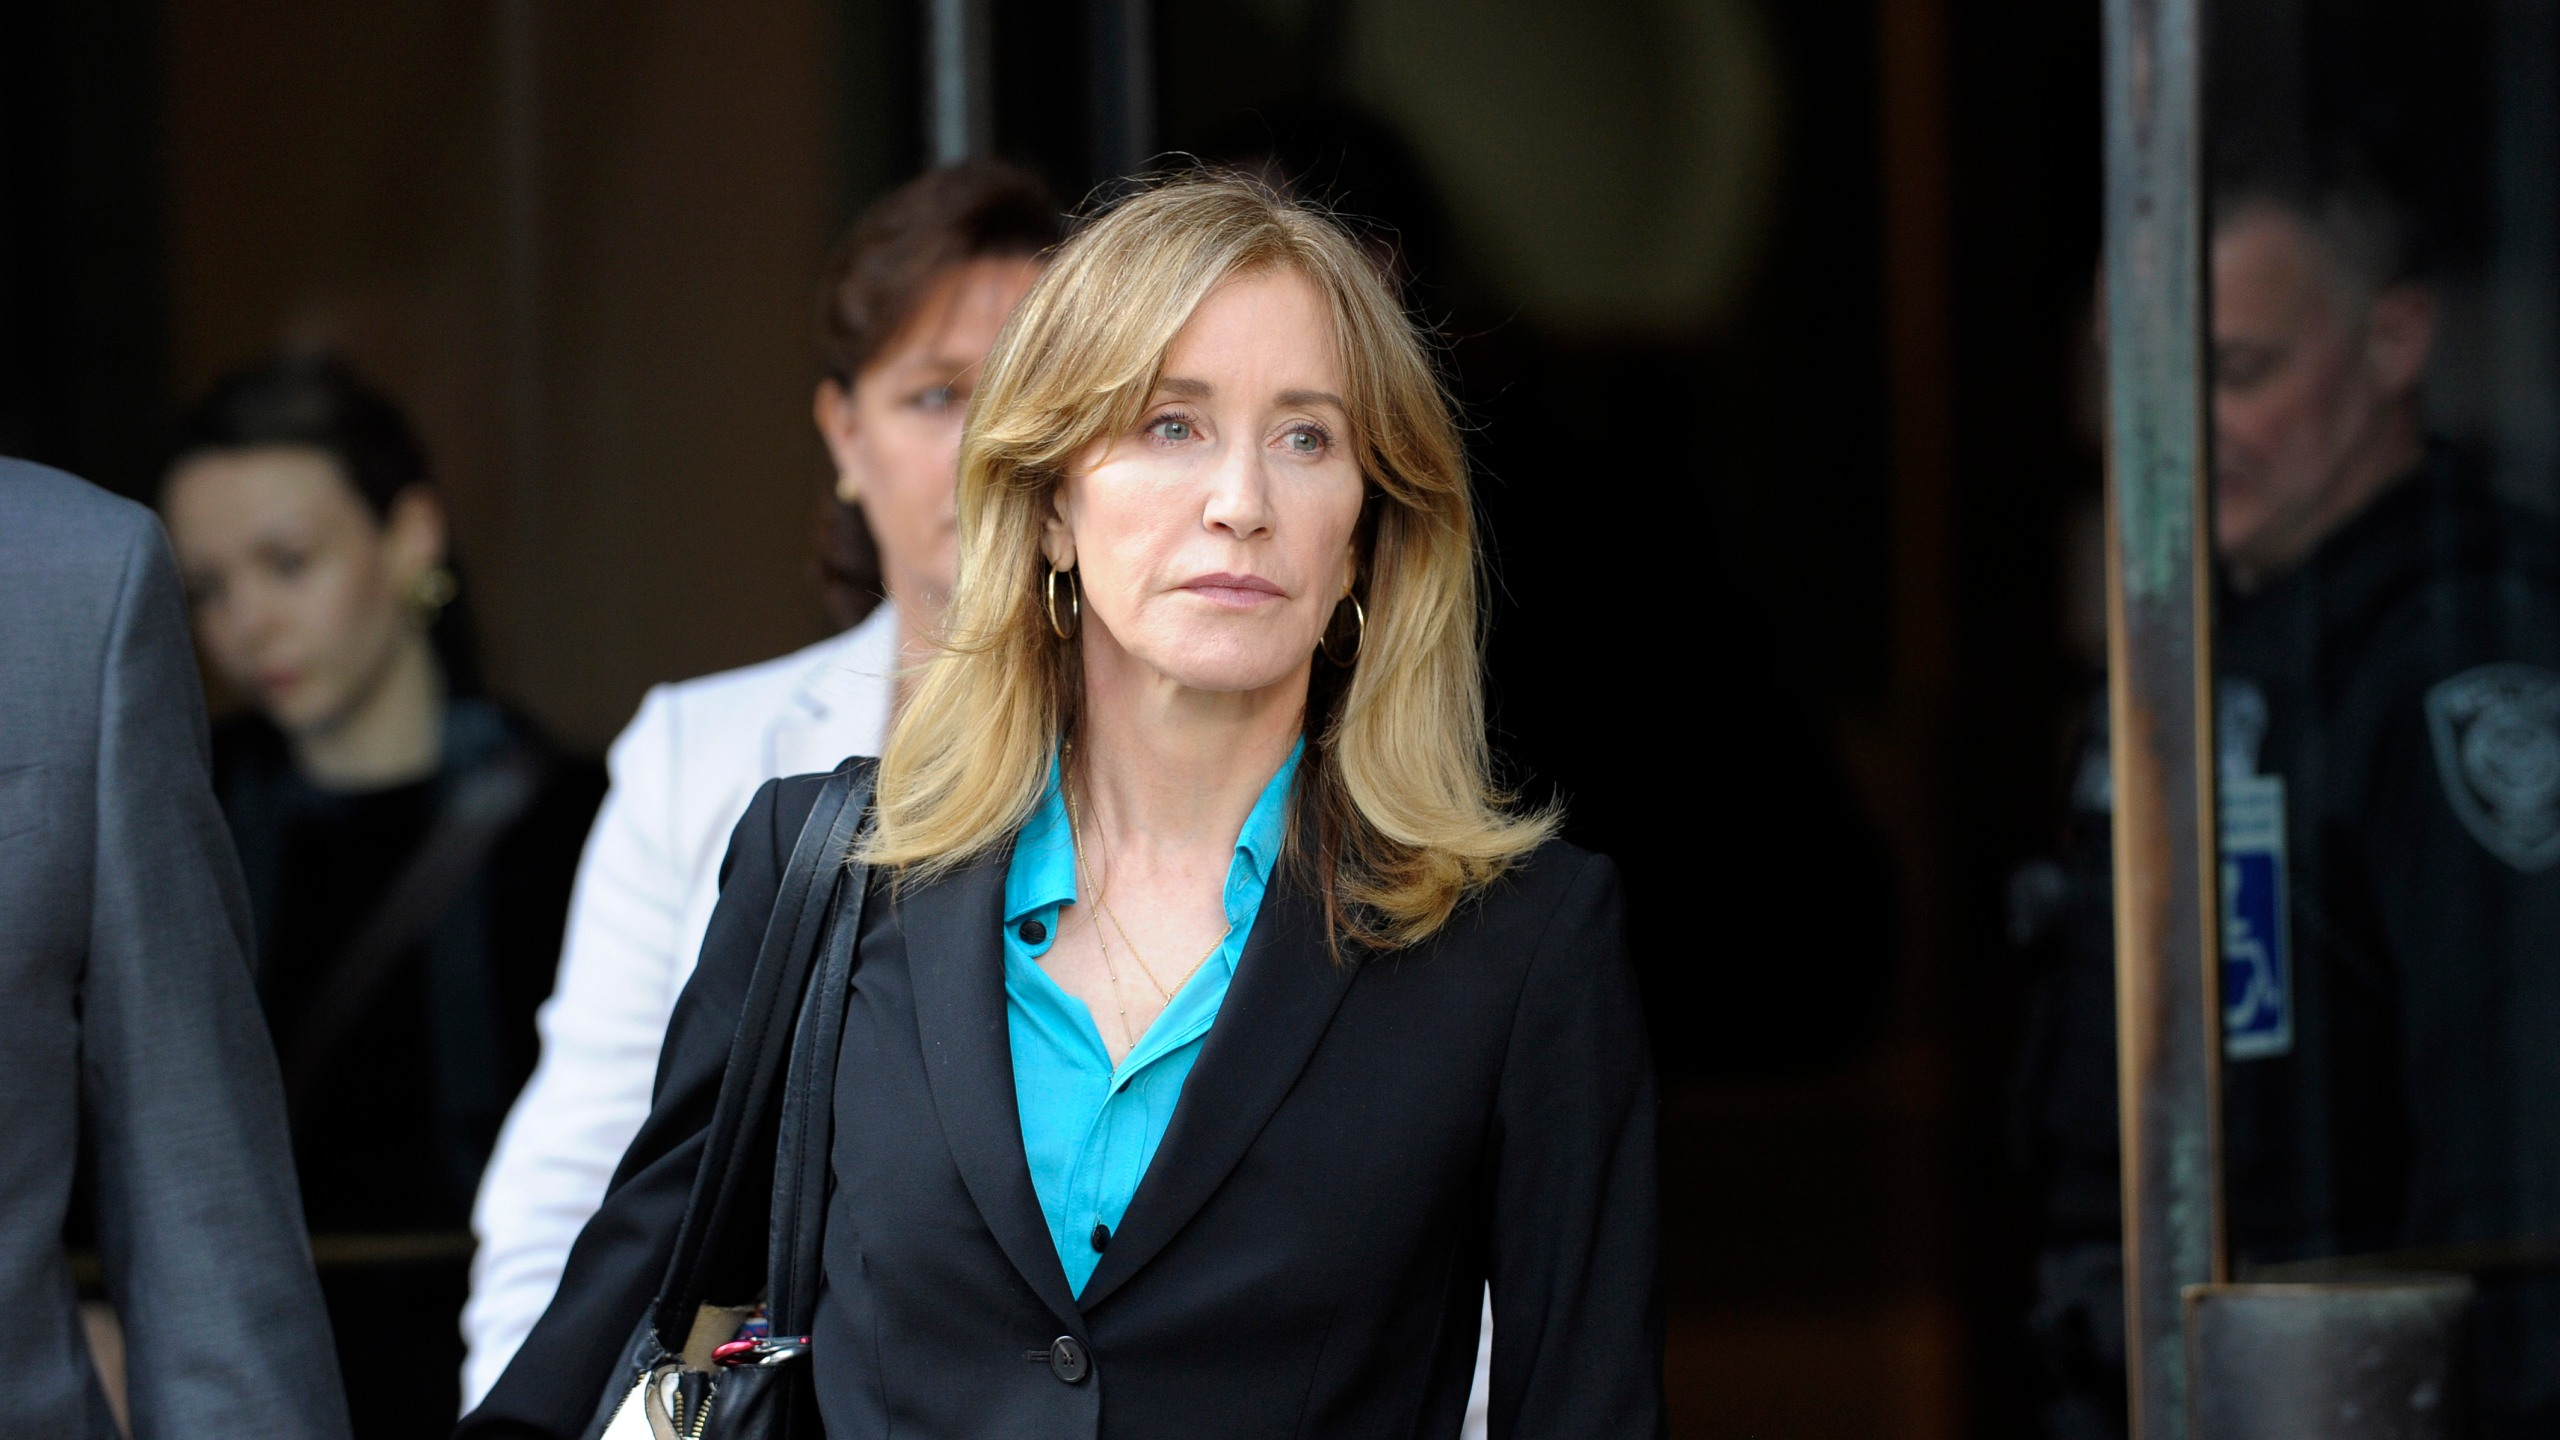 Actress Felicity Huffman exits the courthouse in Boston after facing charges for allegedly conspiring to commit mail fraud and other charges in the college admissions scandal on April 3, 2019. (Credit: Joseph Prezioso / AFP / Getty Images)